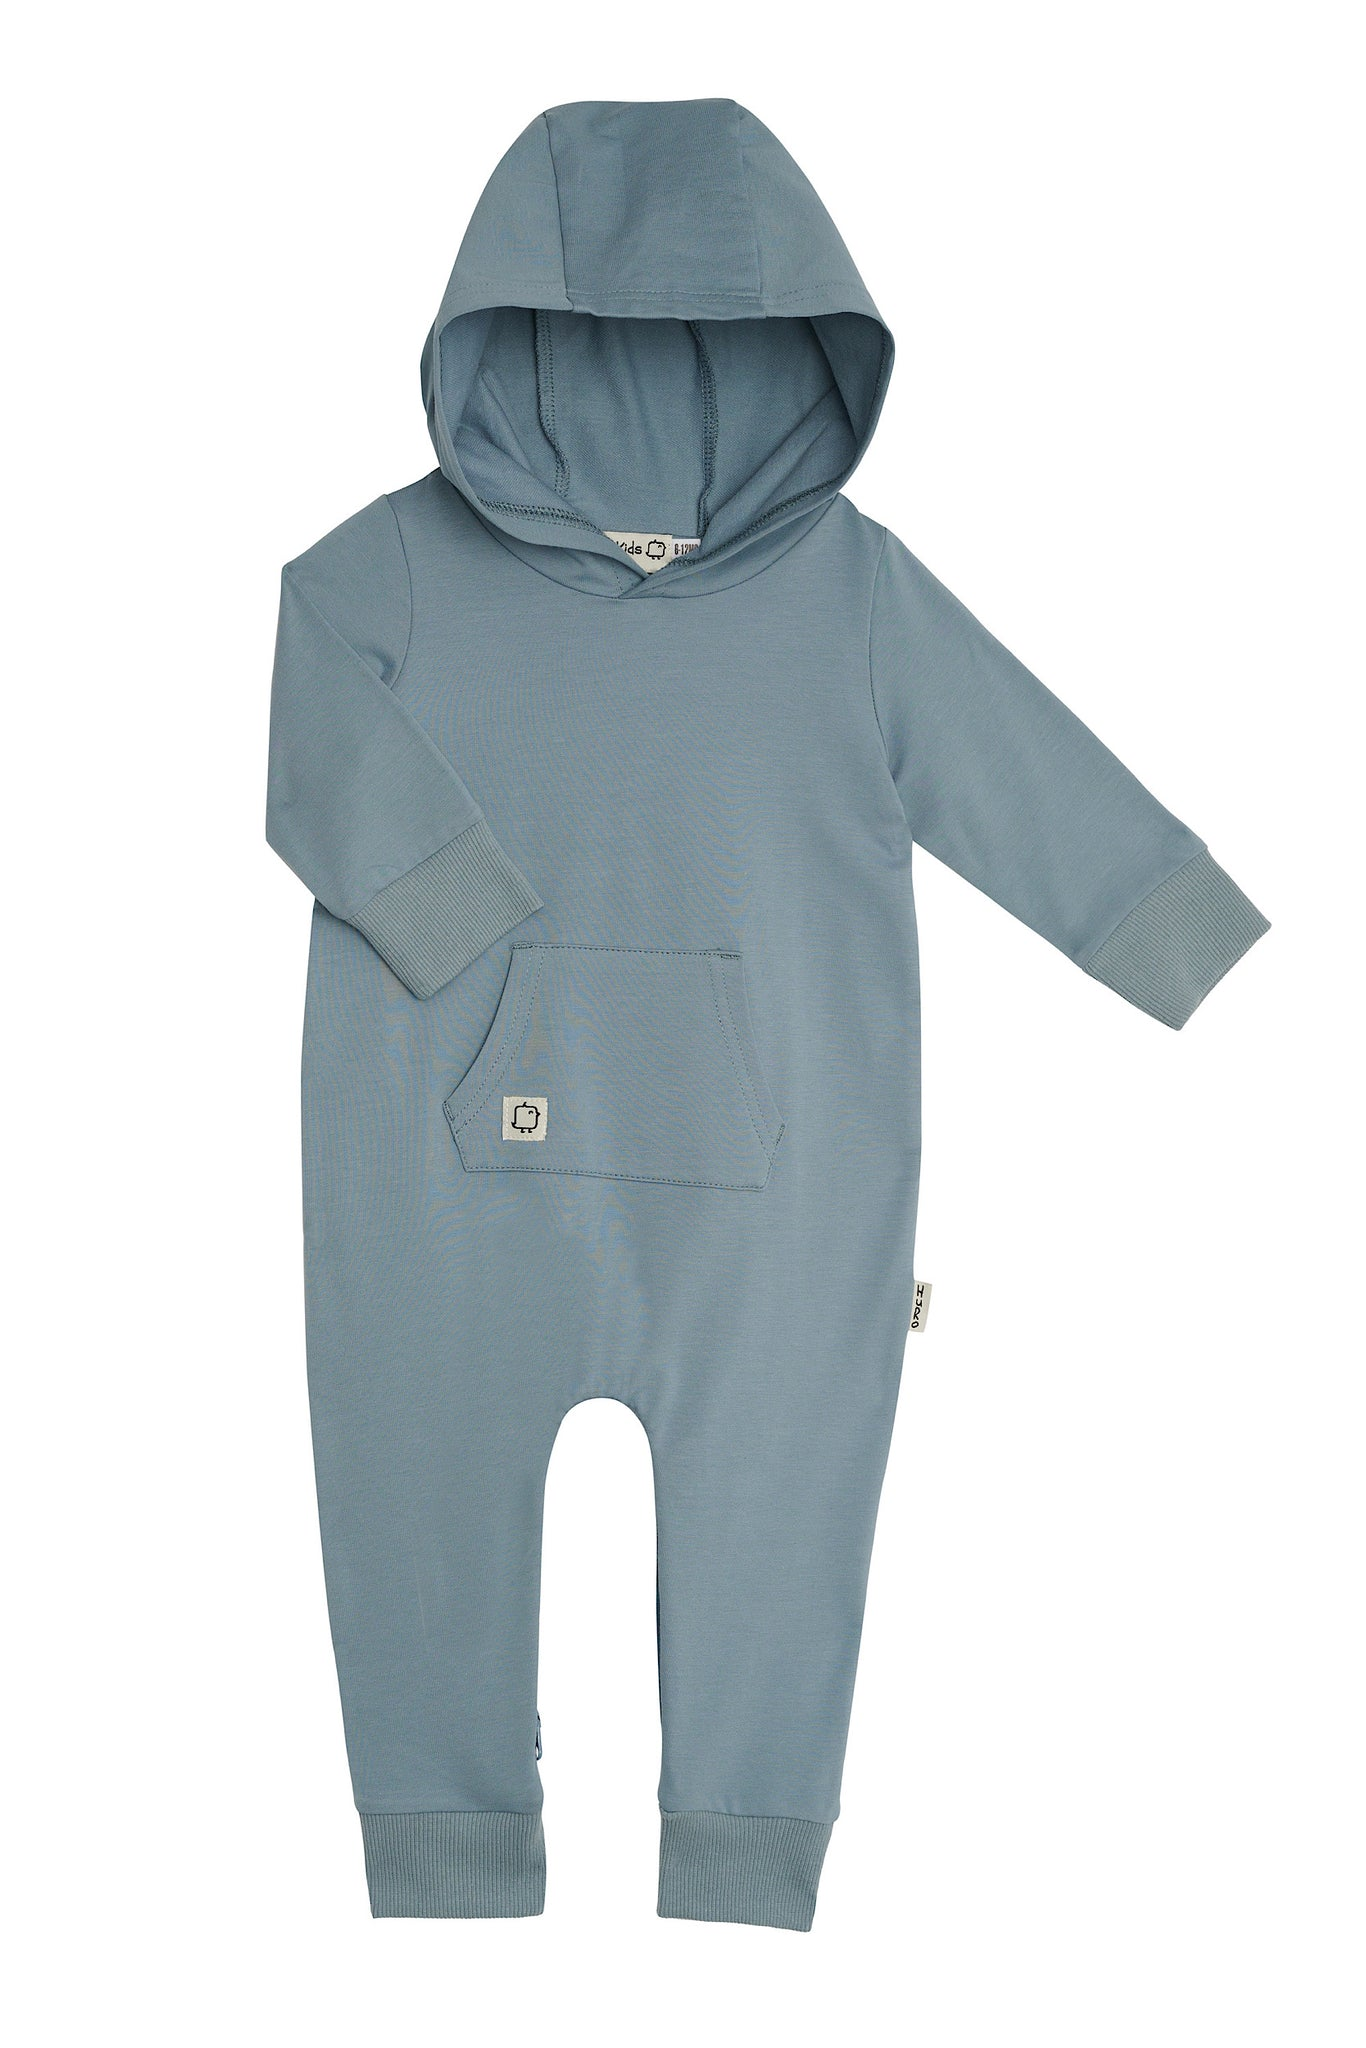 Hooded Romper - Aero - HuRo Kids Clothing